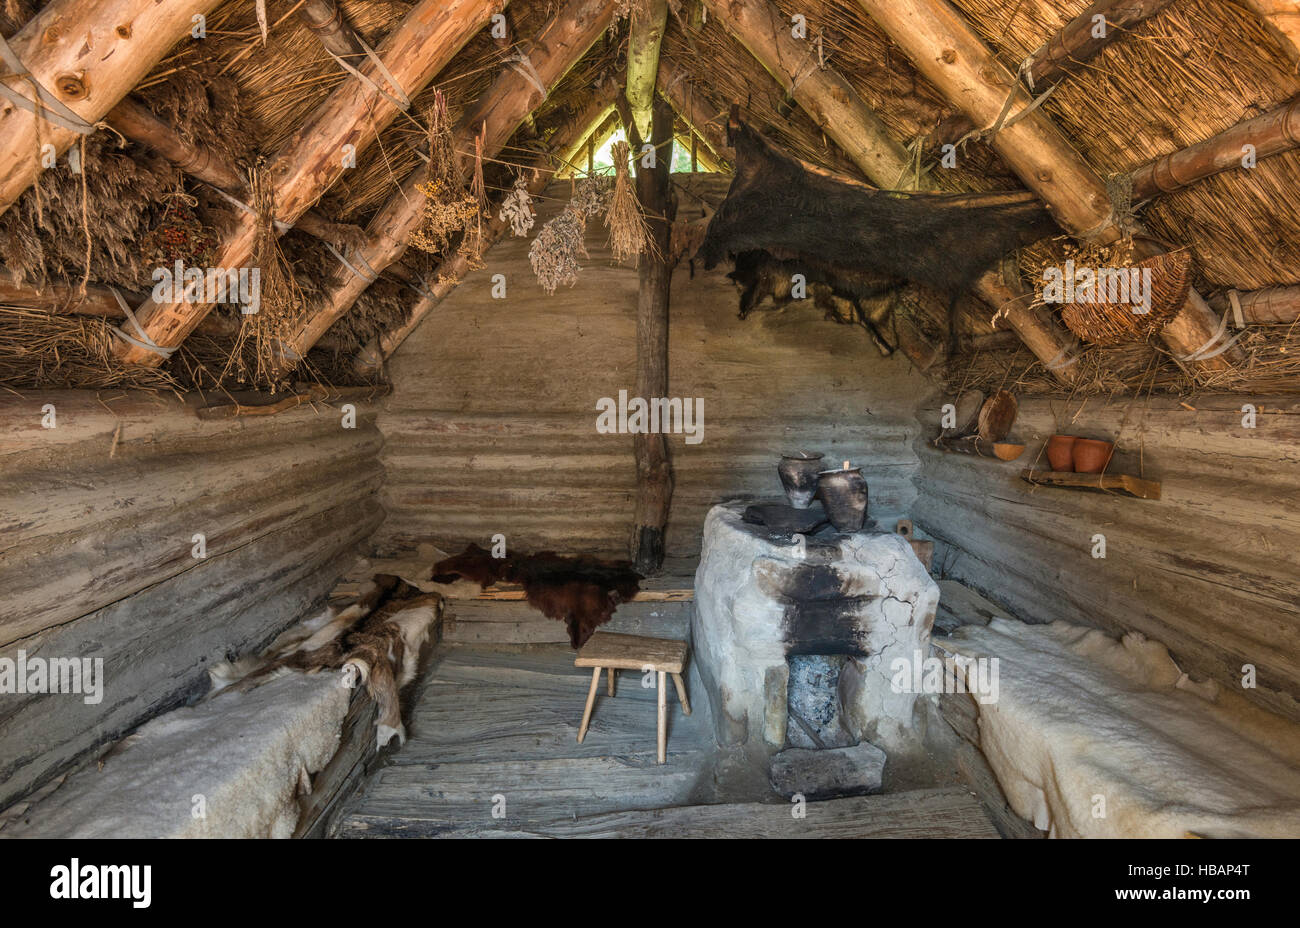 Interior of Slavonic cottage, 9th century, reconstruction, Carpathian Troy Archaeological Open-Air Museum in Trzcinica, - Stock Image